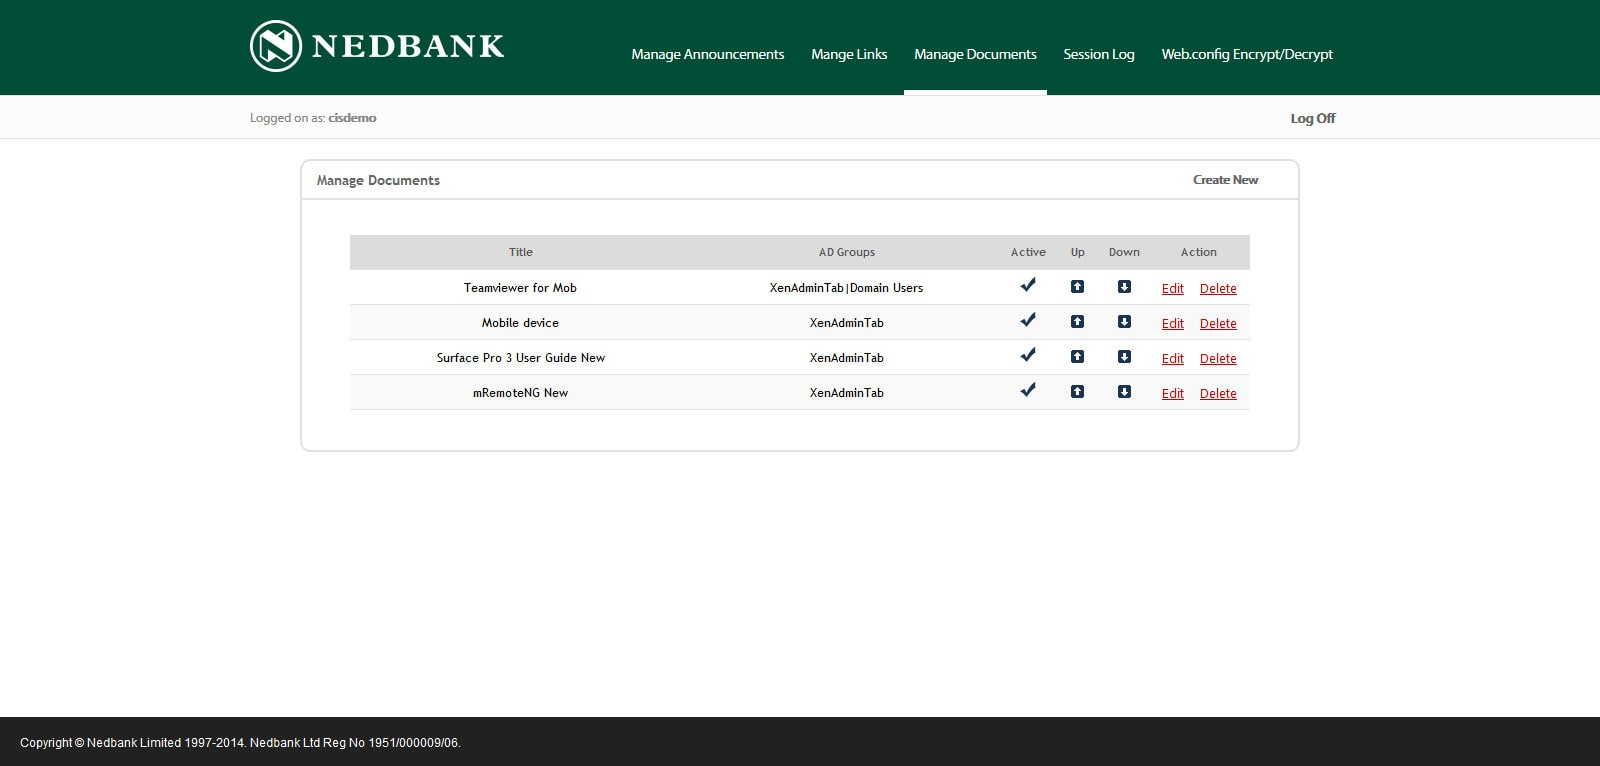 NEDBANK - Interface Admin Manage Documents